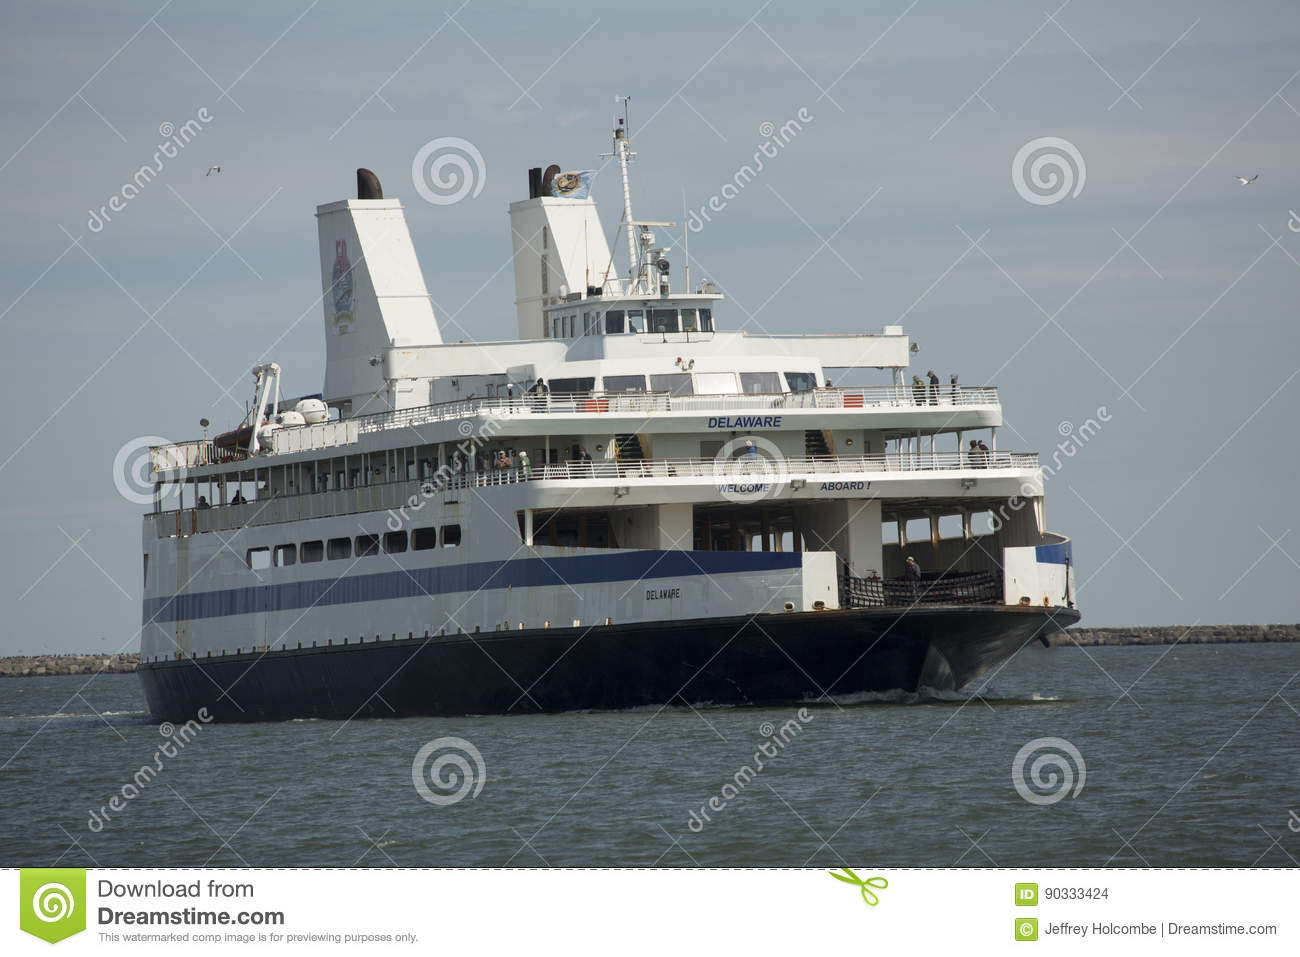 cape may ferry boat turns into dock at lewes, delaware. editorial